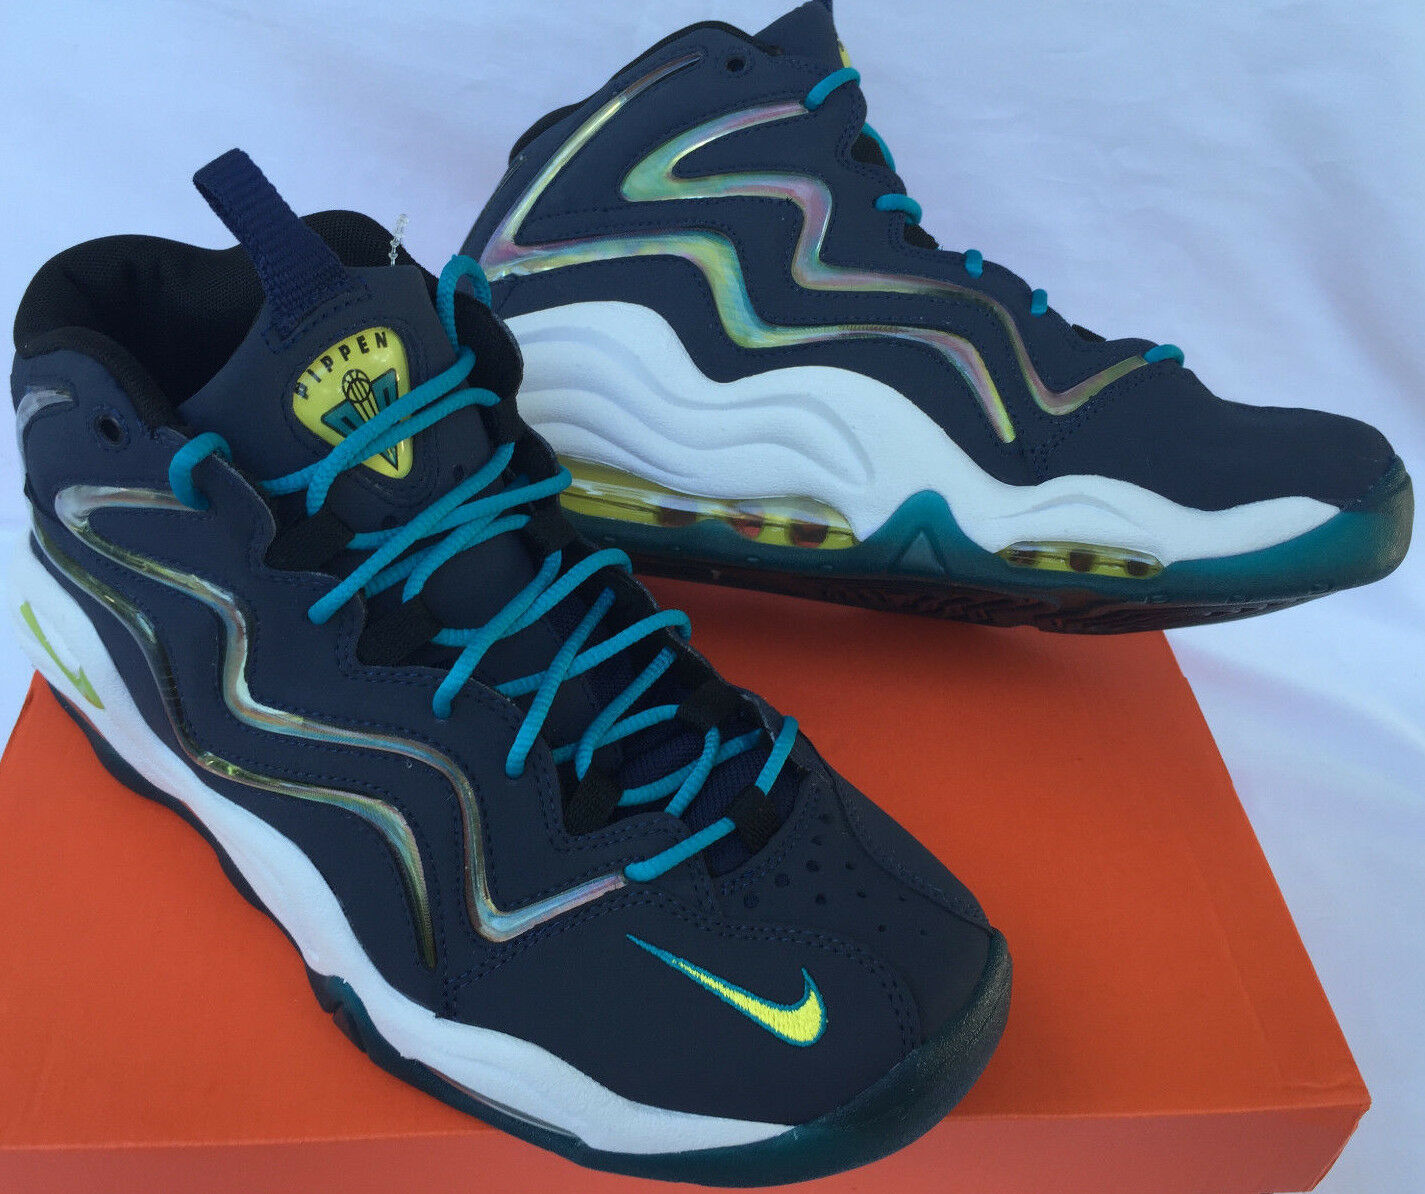 Nike Air Pippen 325001-400 Midnight Navy Yelfaible Basketball chaussures homme new 8 NBA new homme e45529